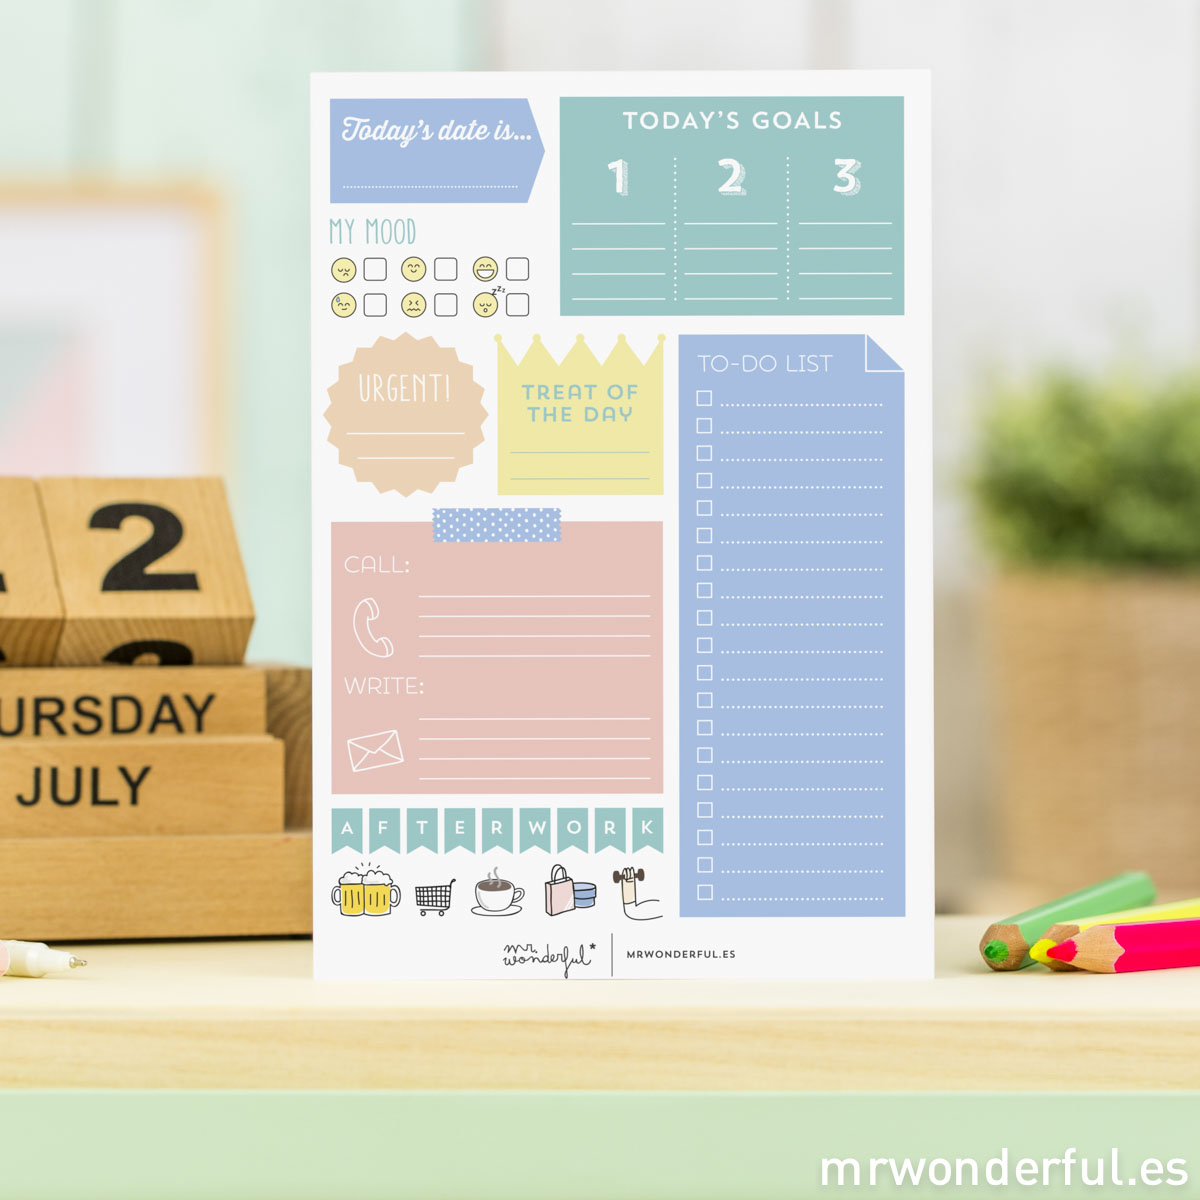 mrwonderful_WEEK15_Activit-planner-your-day-to-day-life_01